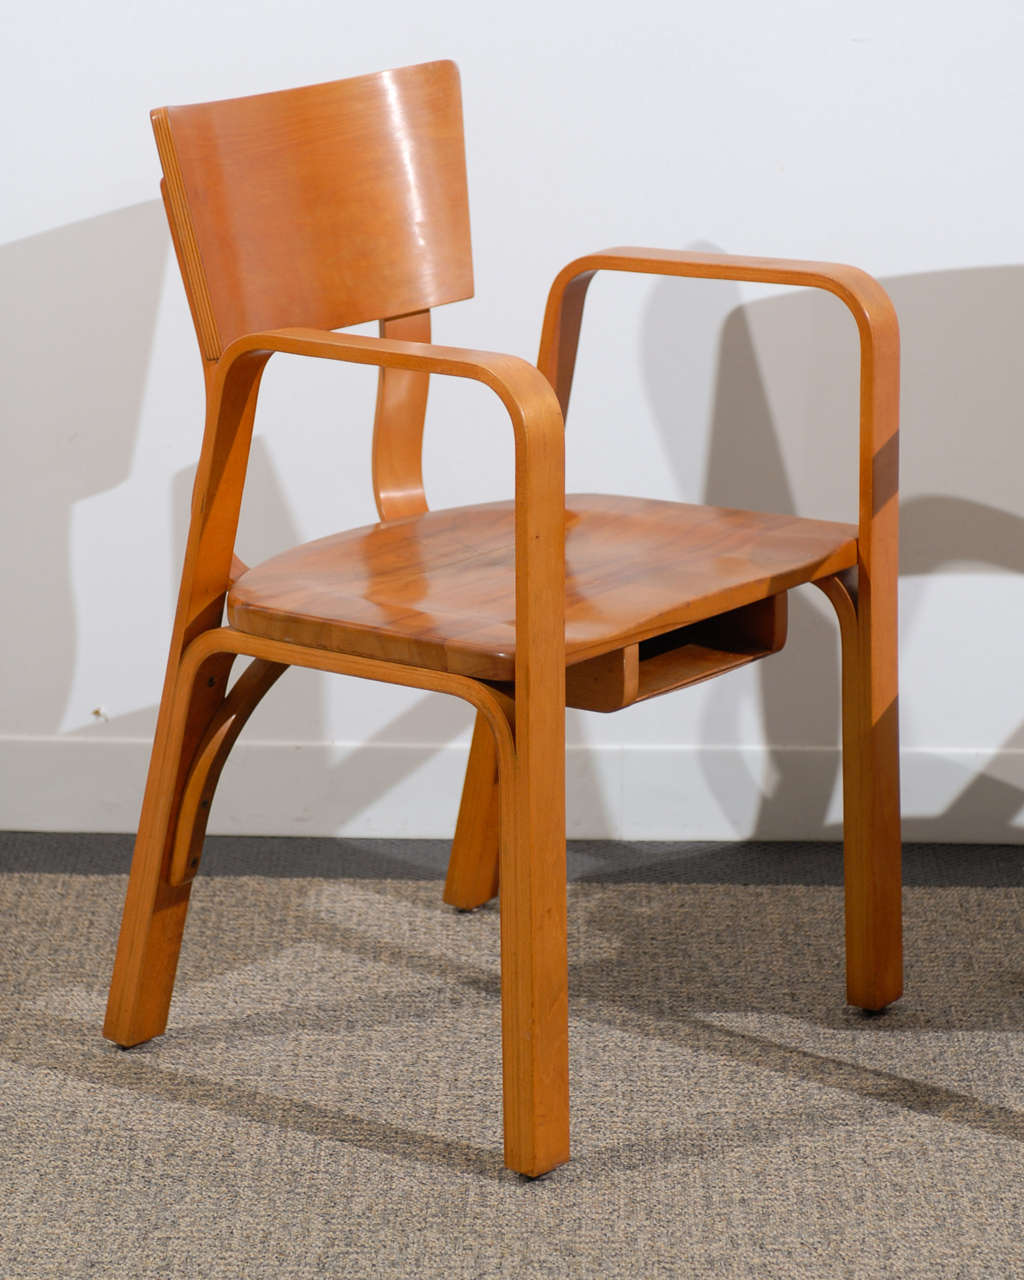 Bent Plywood Chair An Unusual Pair Of Bent Plywood Arm Chairs By Thonet At